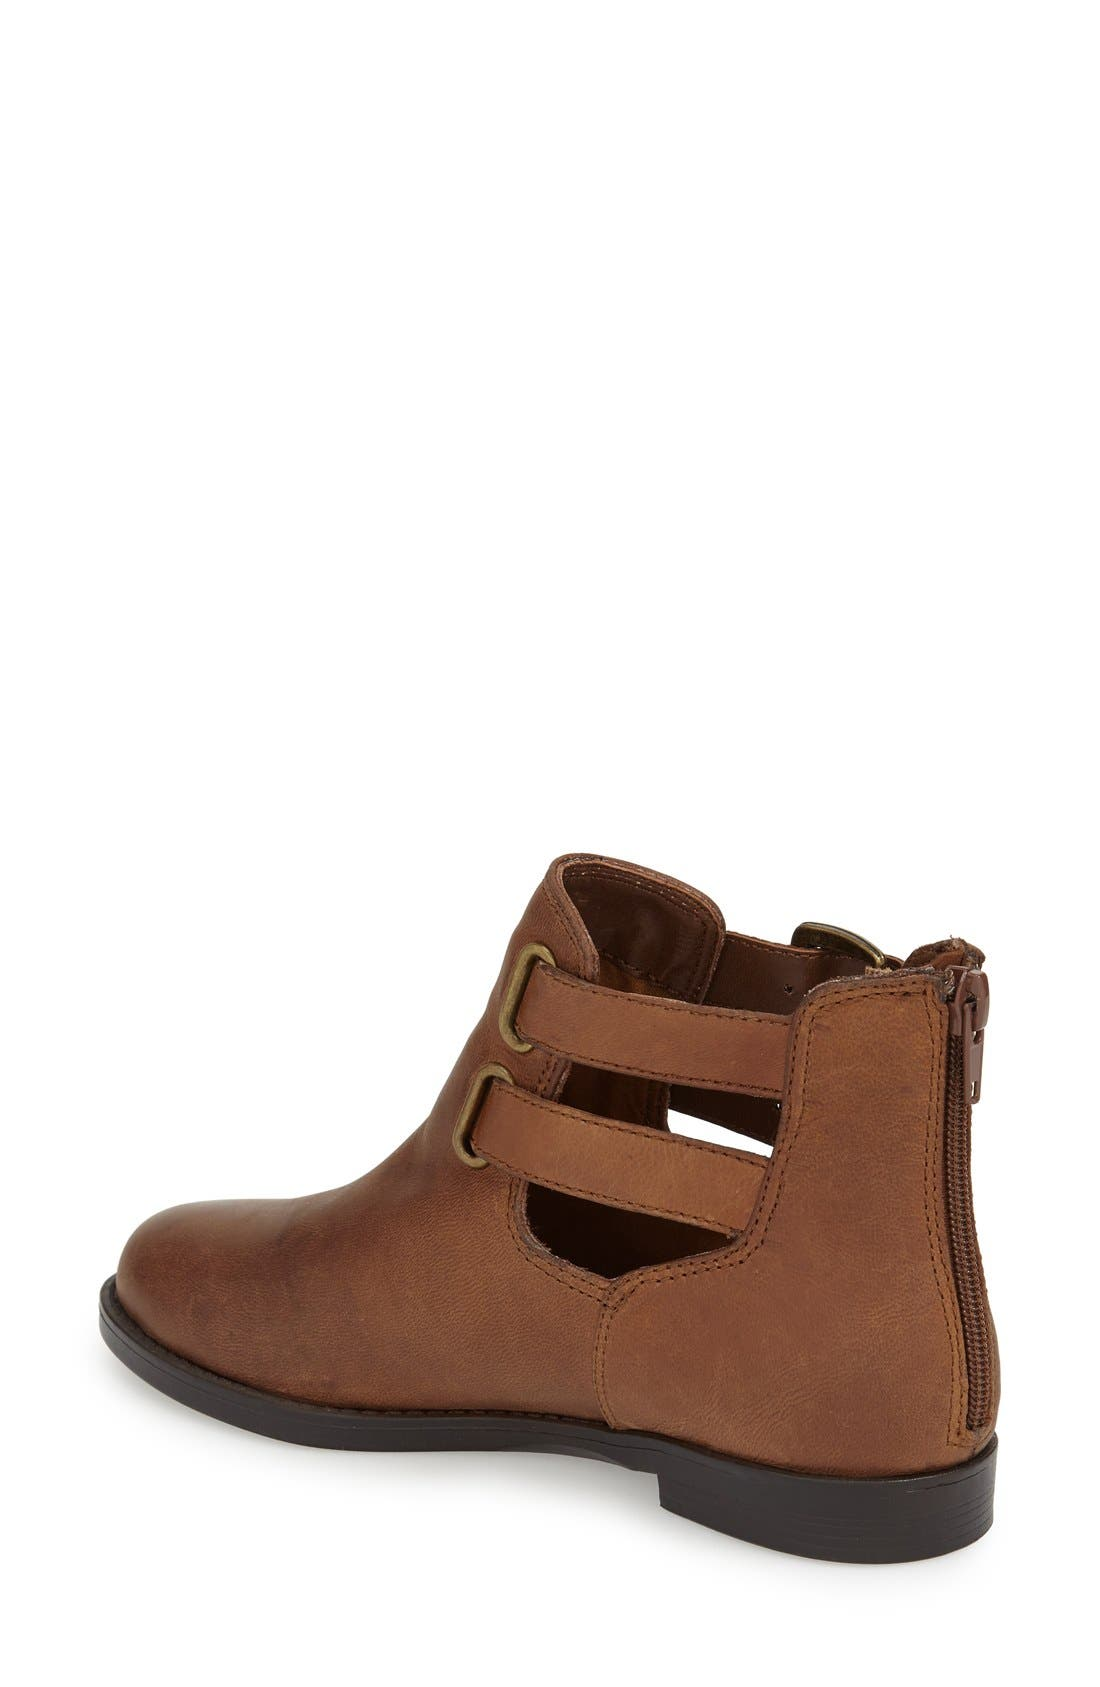 'Ramona' Double Buckle Bootie,                             Alternate thumbnail 2, color,                             Camel Leather